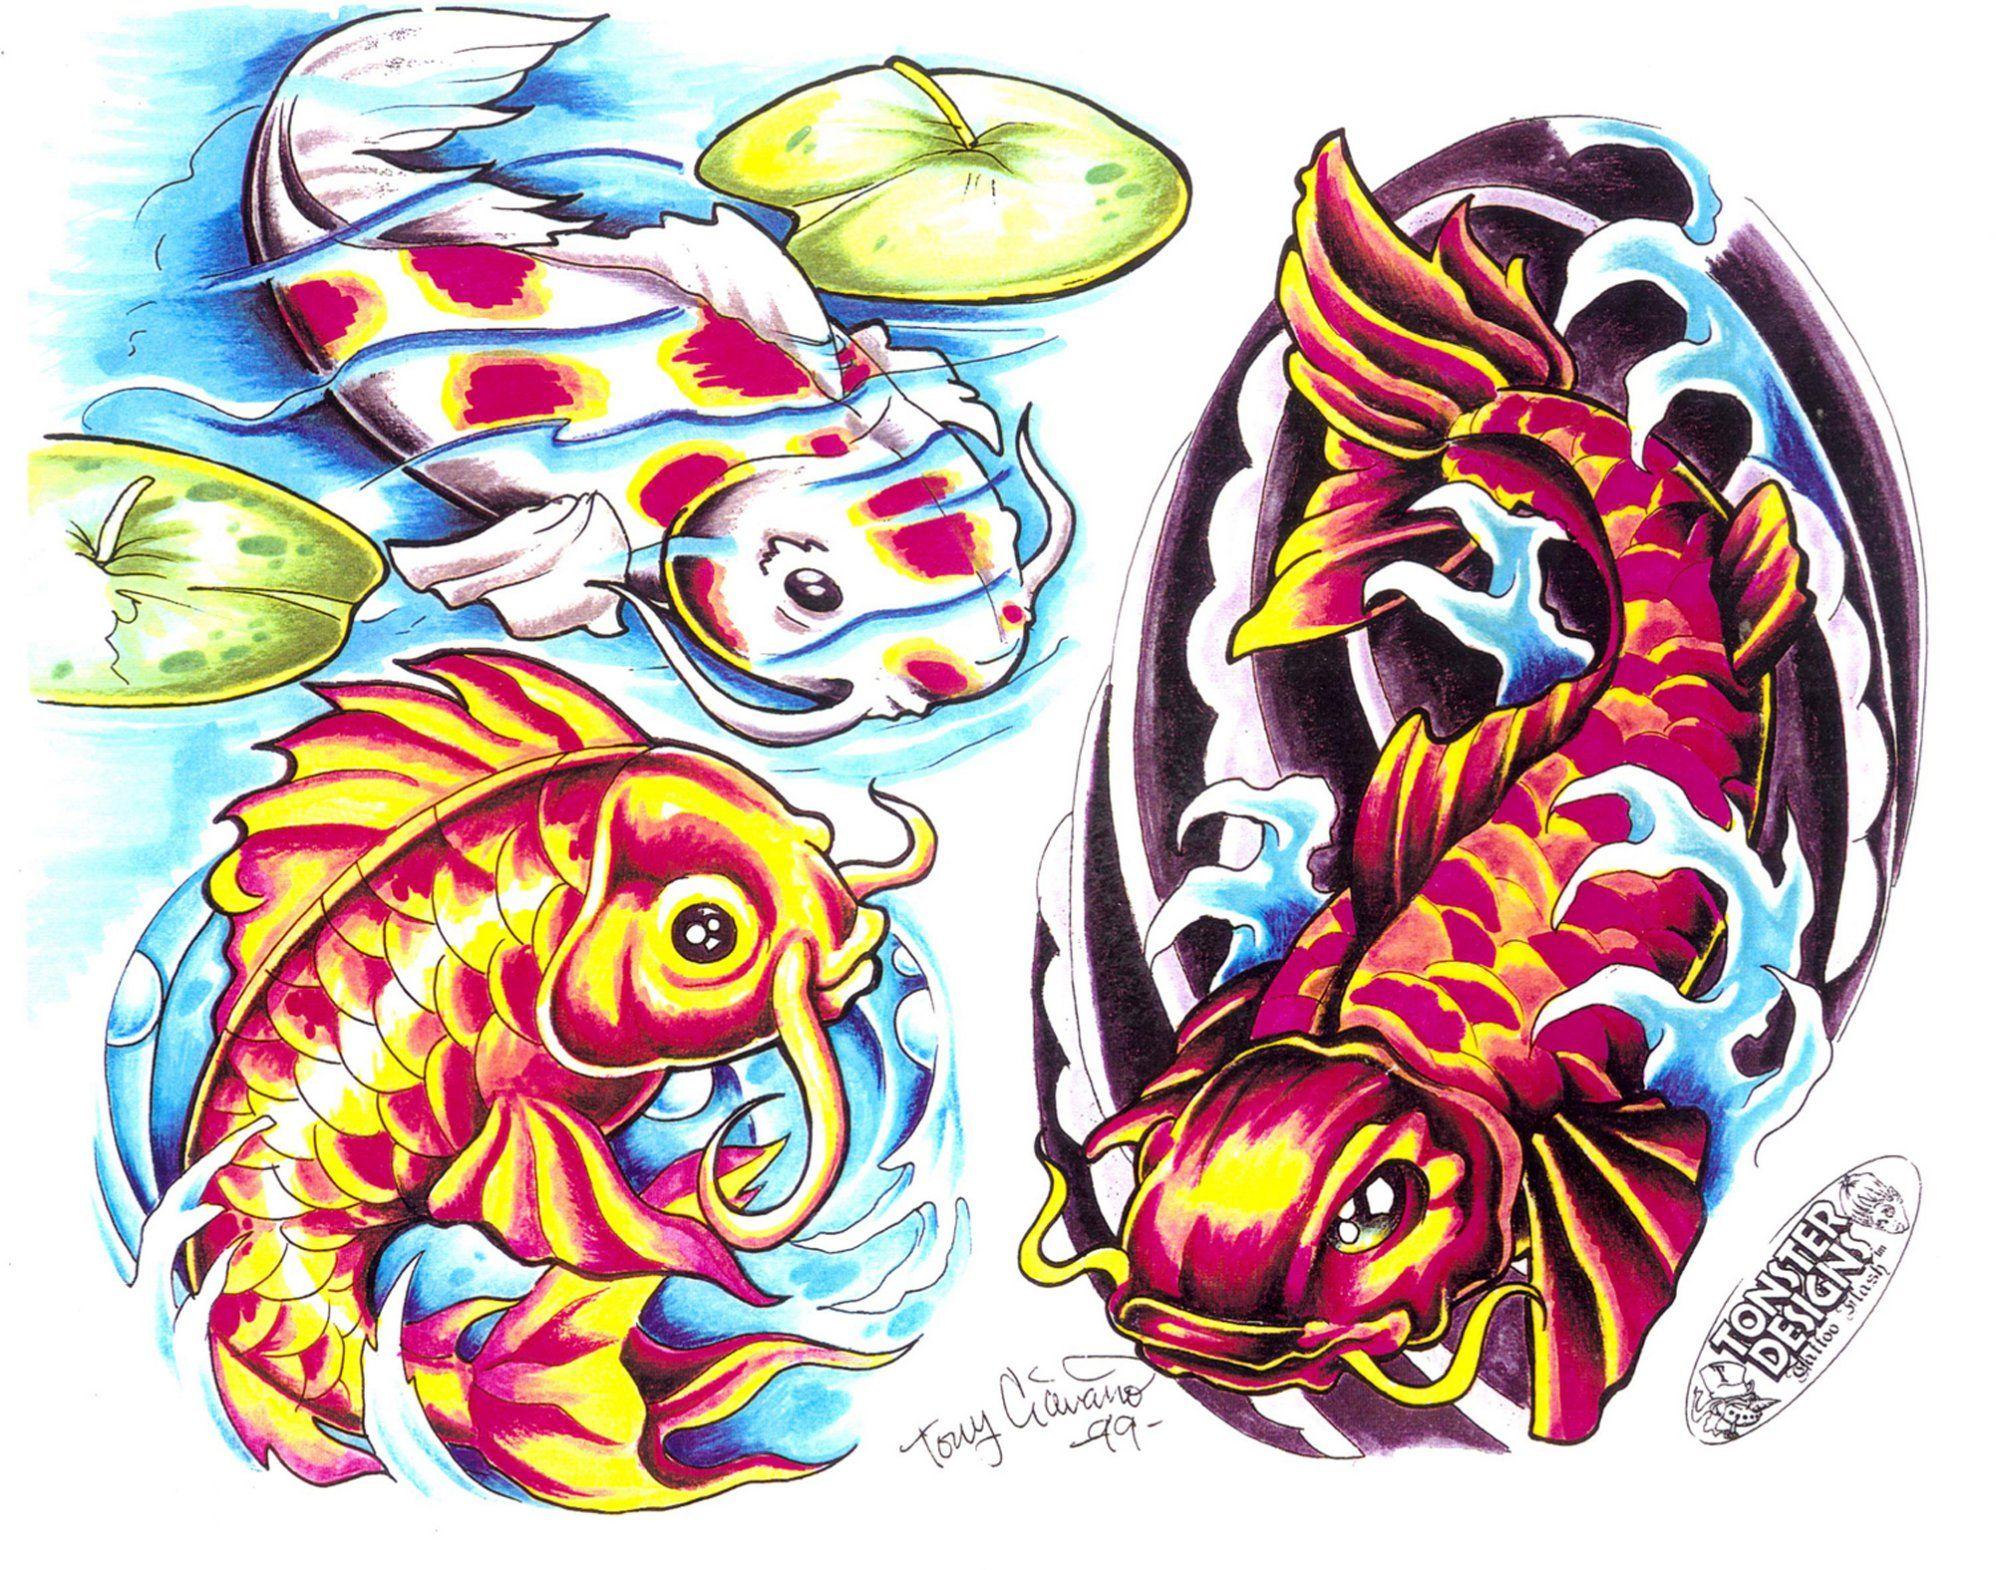 Pez koi  Tatuajes  Pinterest  Tattoo studio Tattoo designs and